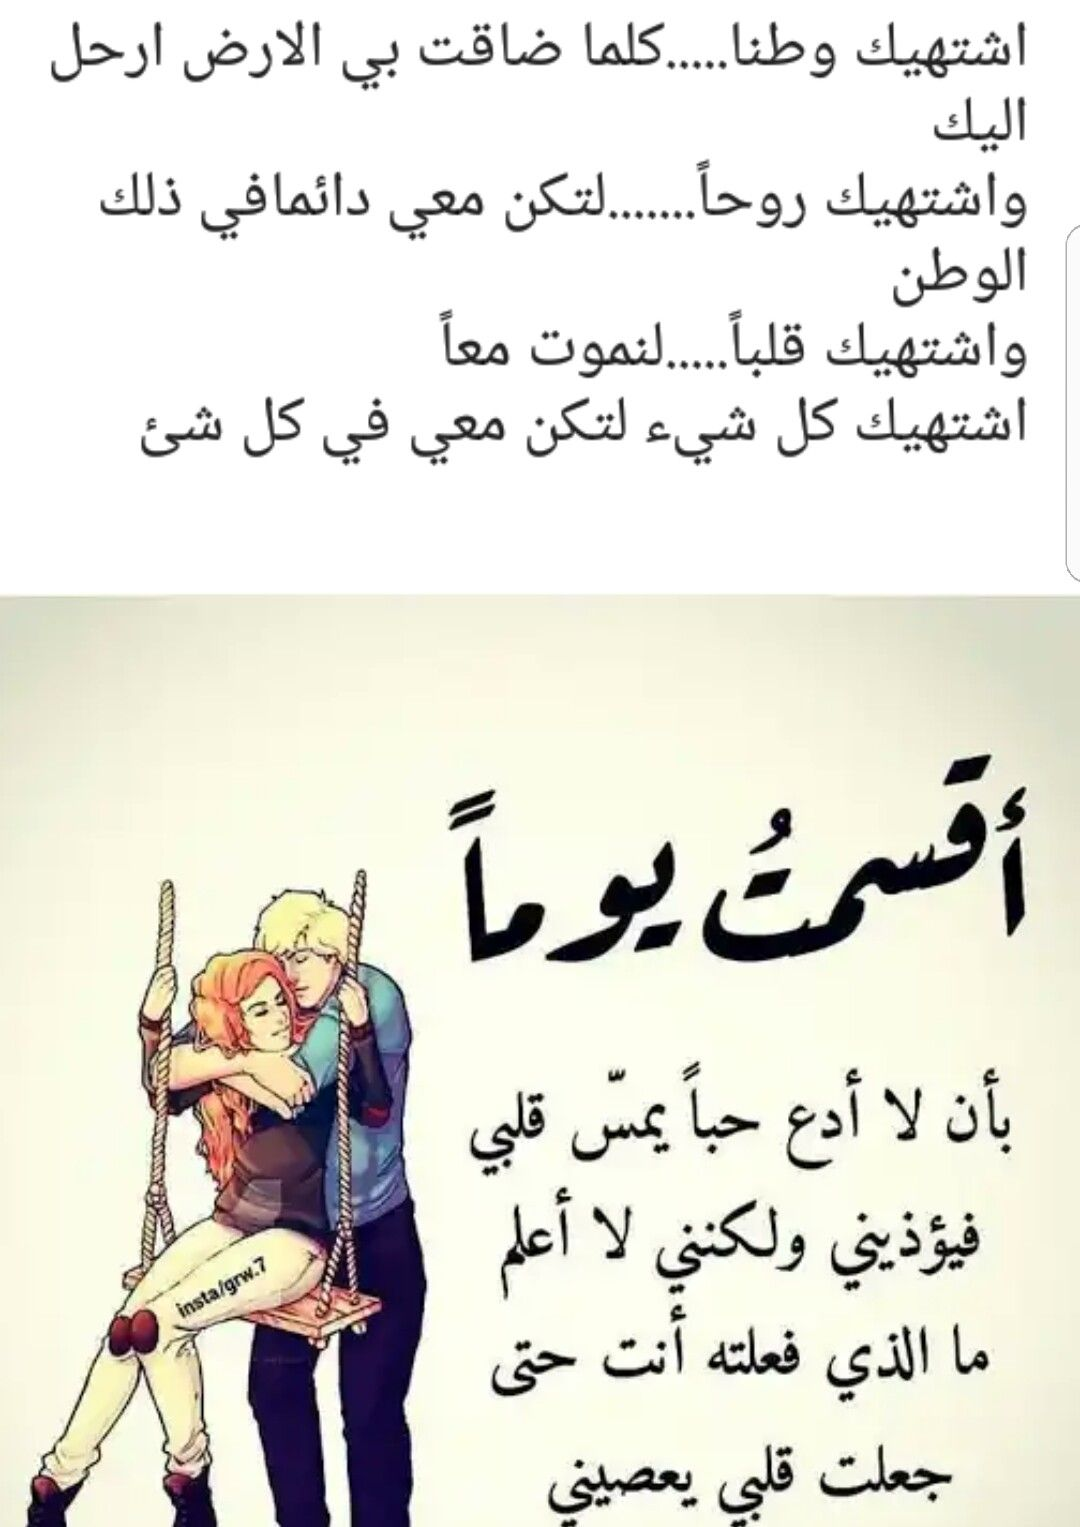 Pin By Mais Samhouri On ليتها تقرأ Words More Than Words Bal